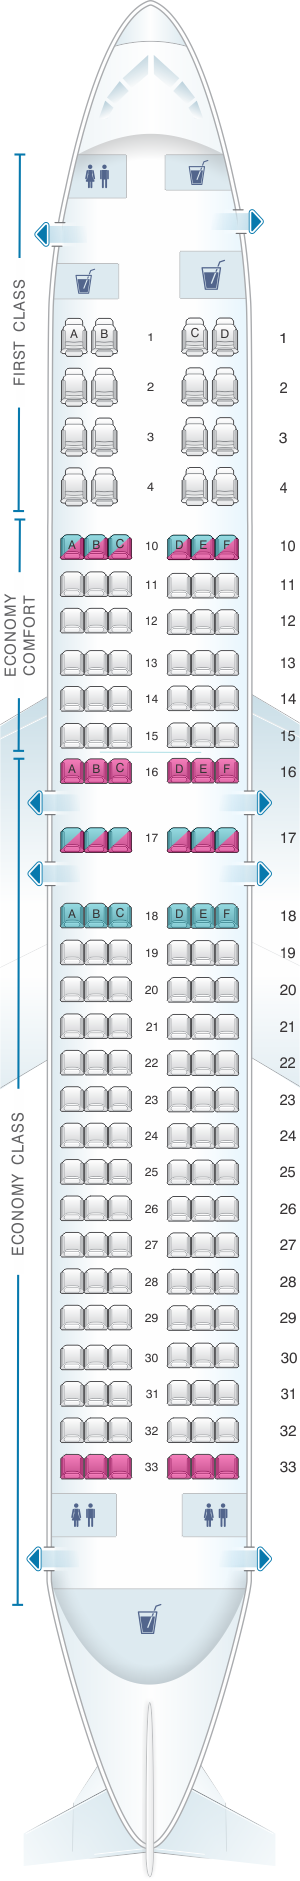 Seat map for Delta Air Lines Boeing B737 800 (738)